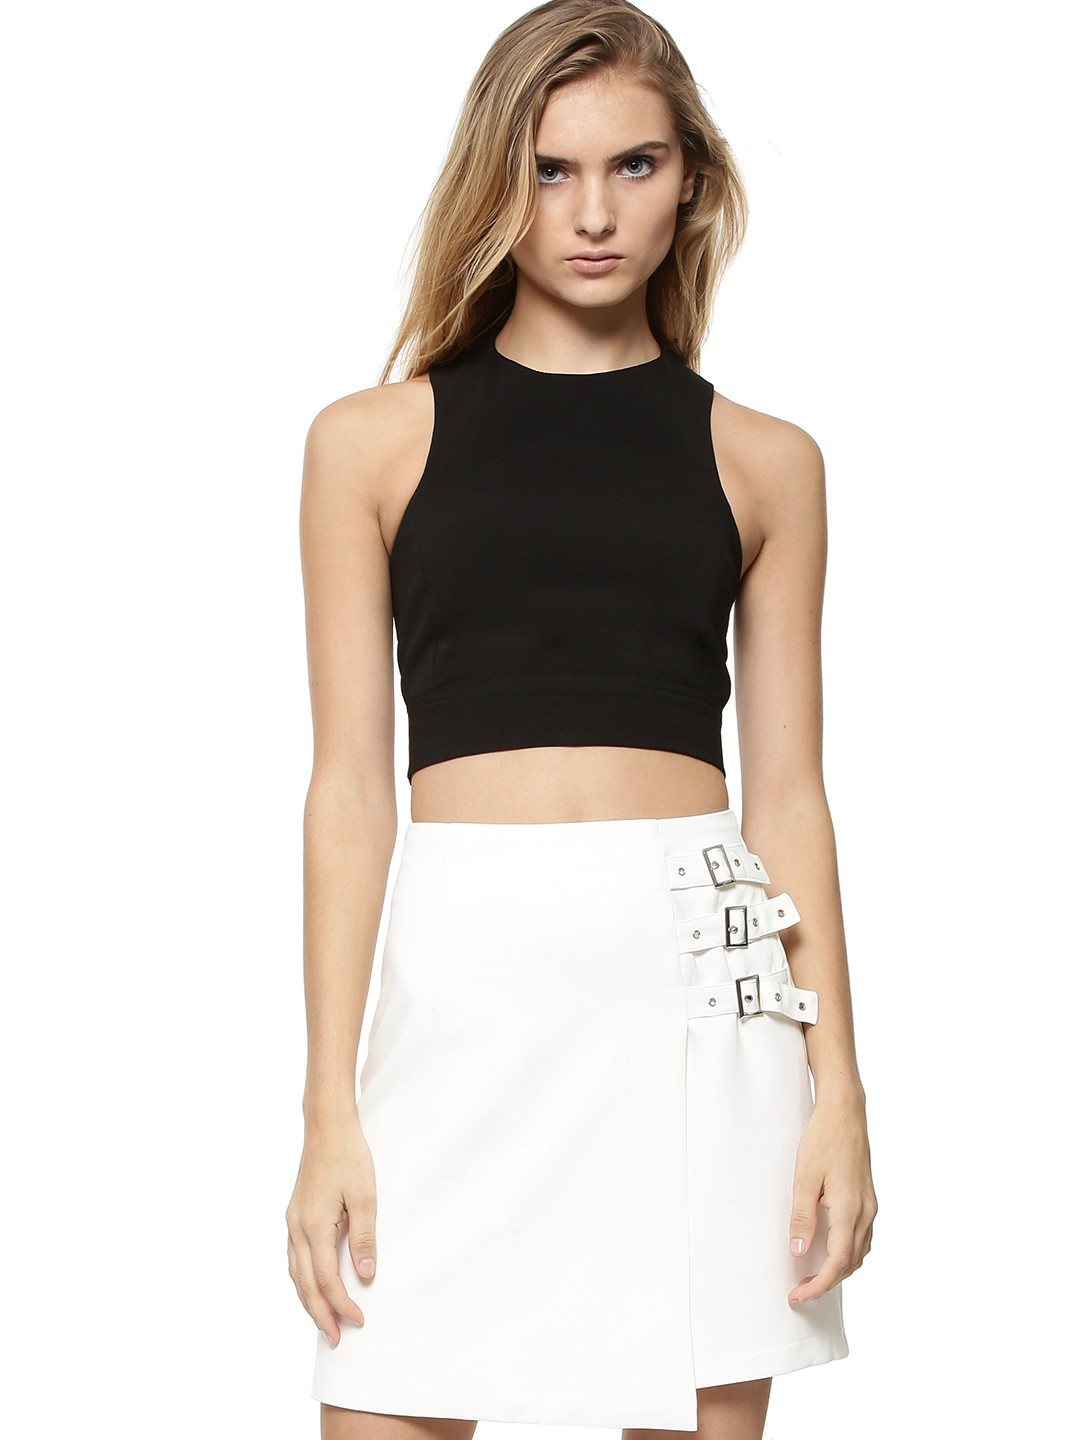 With so many chic pieces coming and going, you're going to want to hurry over to claim your very own Race Ya Black Crop Top! This woven racer-front top has deep cut arm openings that rest above the cropped bodice with darted detail. The halter neck drops to a T-strap back finished with an exposed gold zipper. Fully lined.